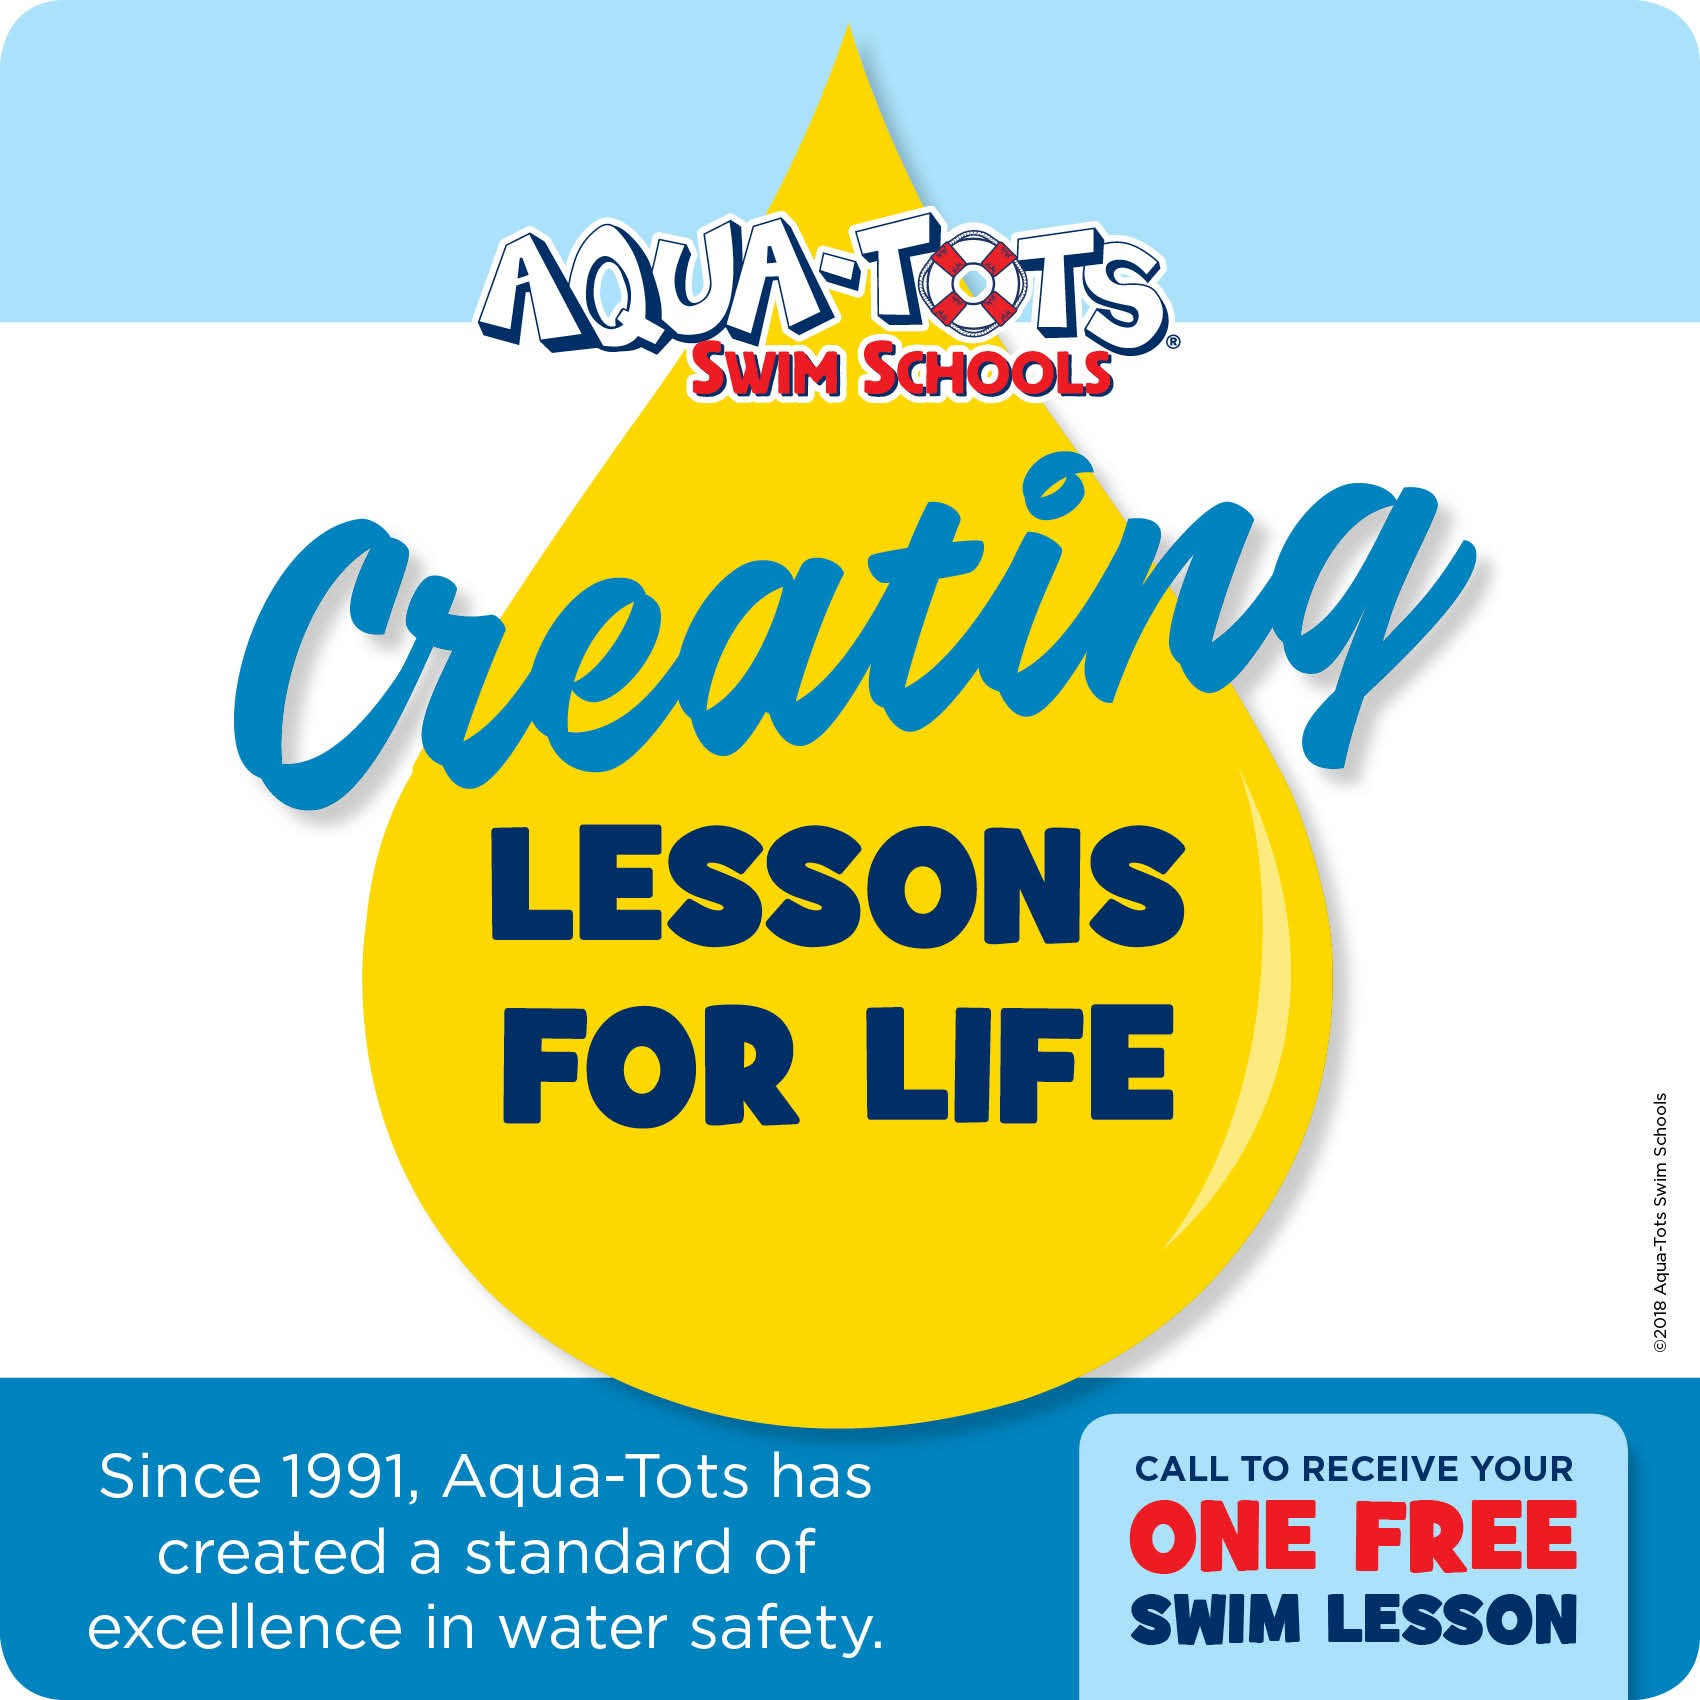 Creating Life Lessons